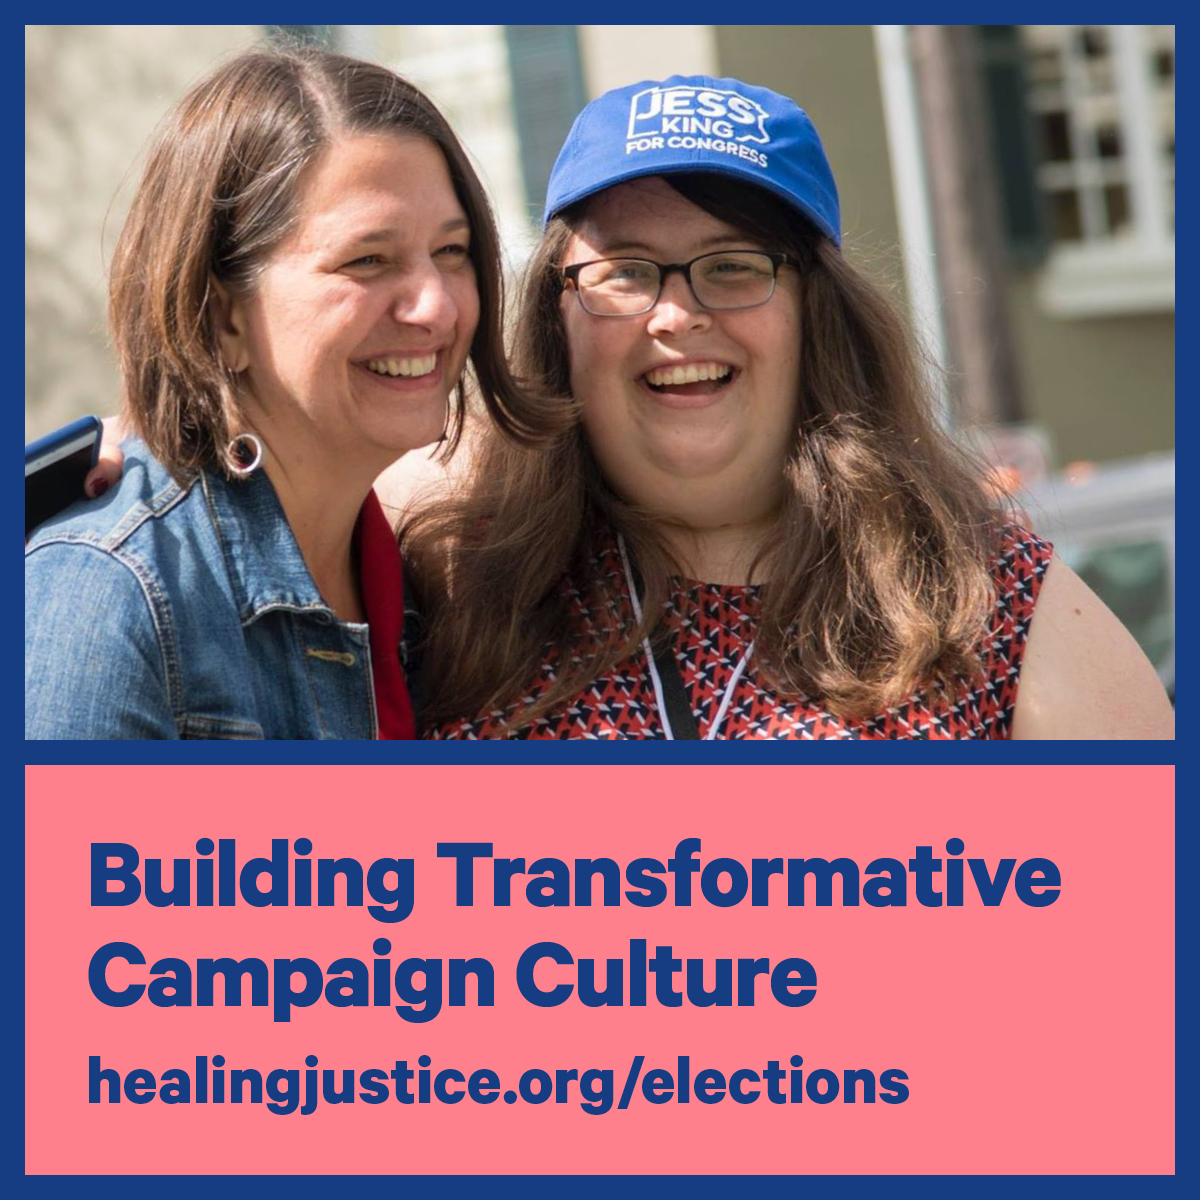 Building Transformative Campaign Culture with Nancy Leeds (CampaignSick) and Becca Rast (Jess King for Congress)